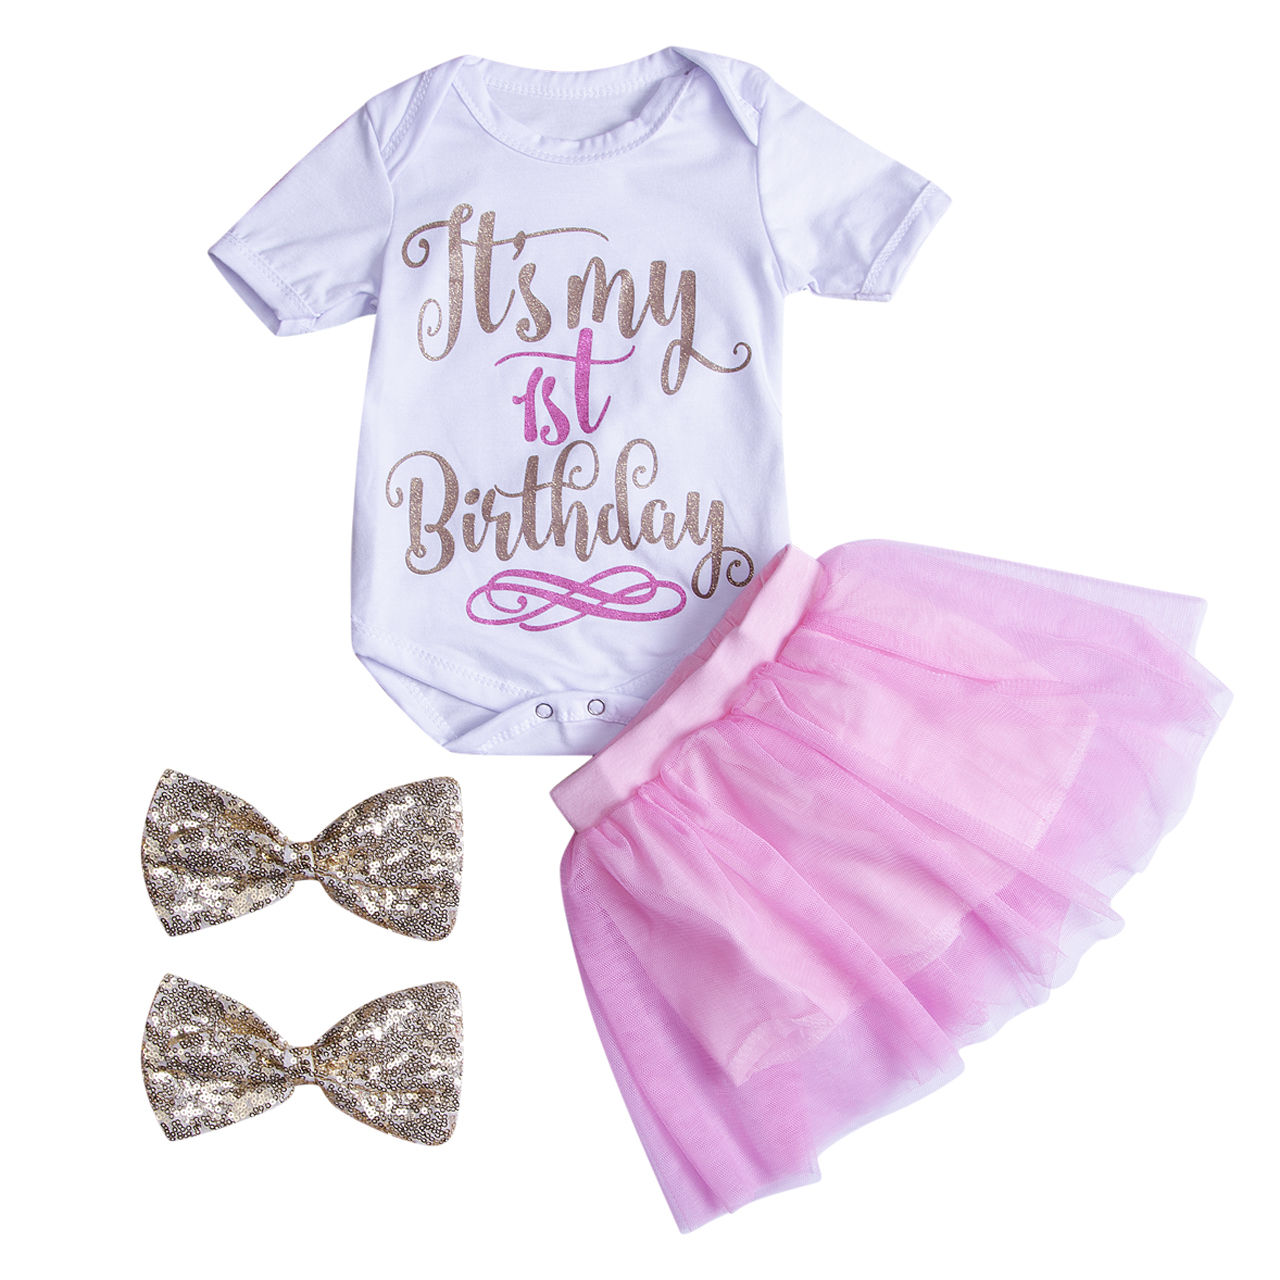 4PCS Baby Kids Girls TOP SALE Outfits Clothes Letter Short Sleeve+Solid Skirt+Double Hairband Summer 0-24M